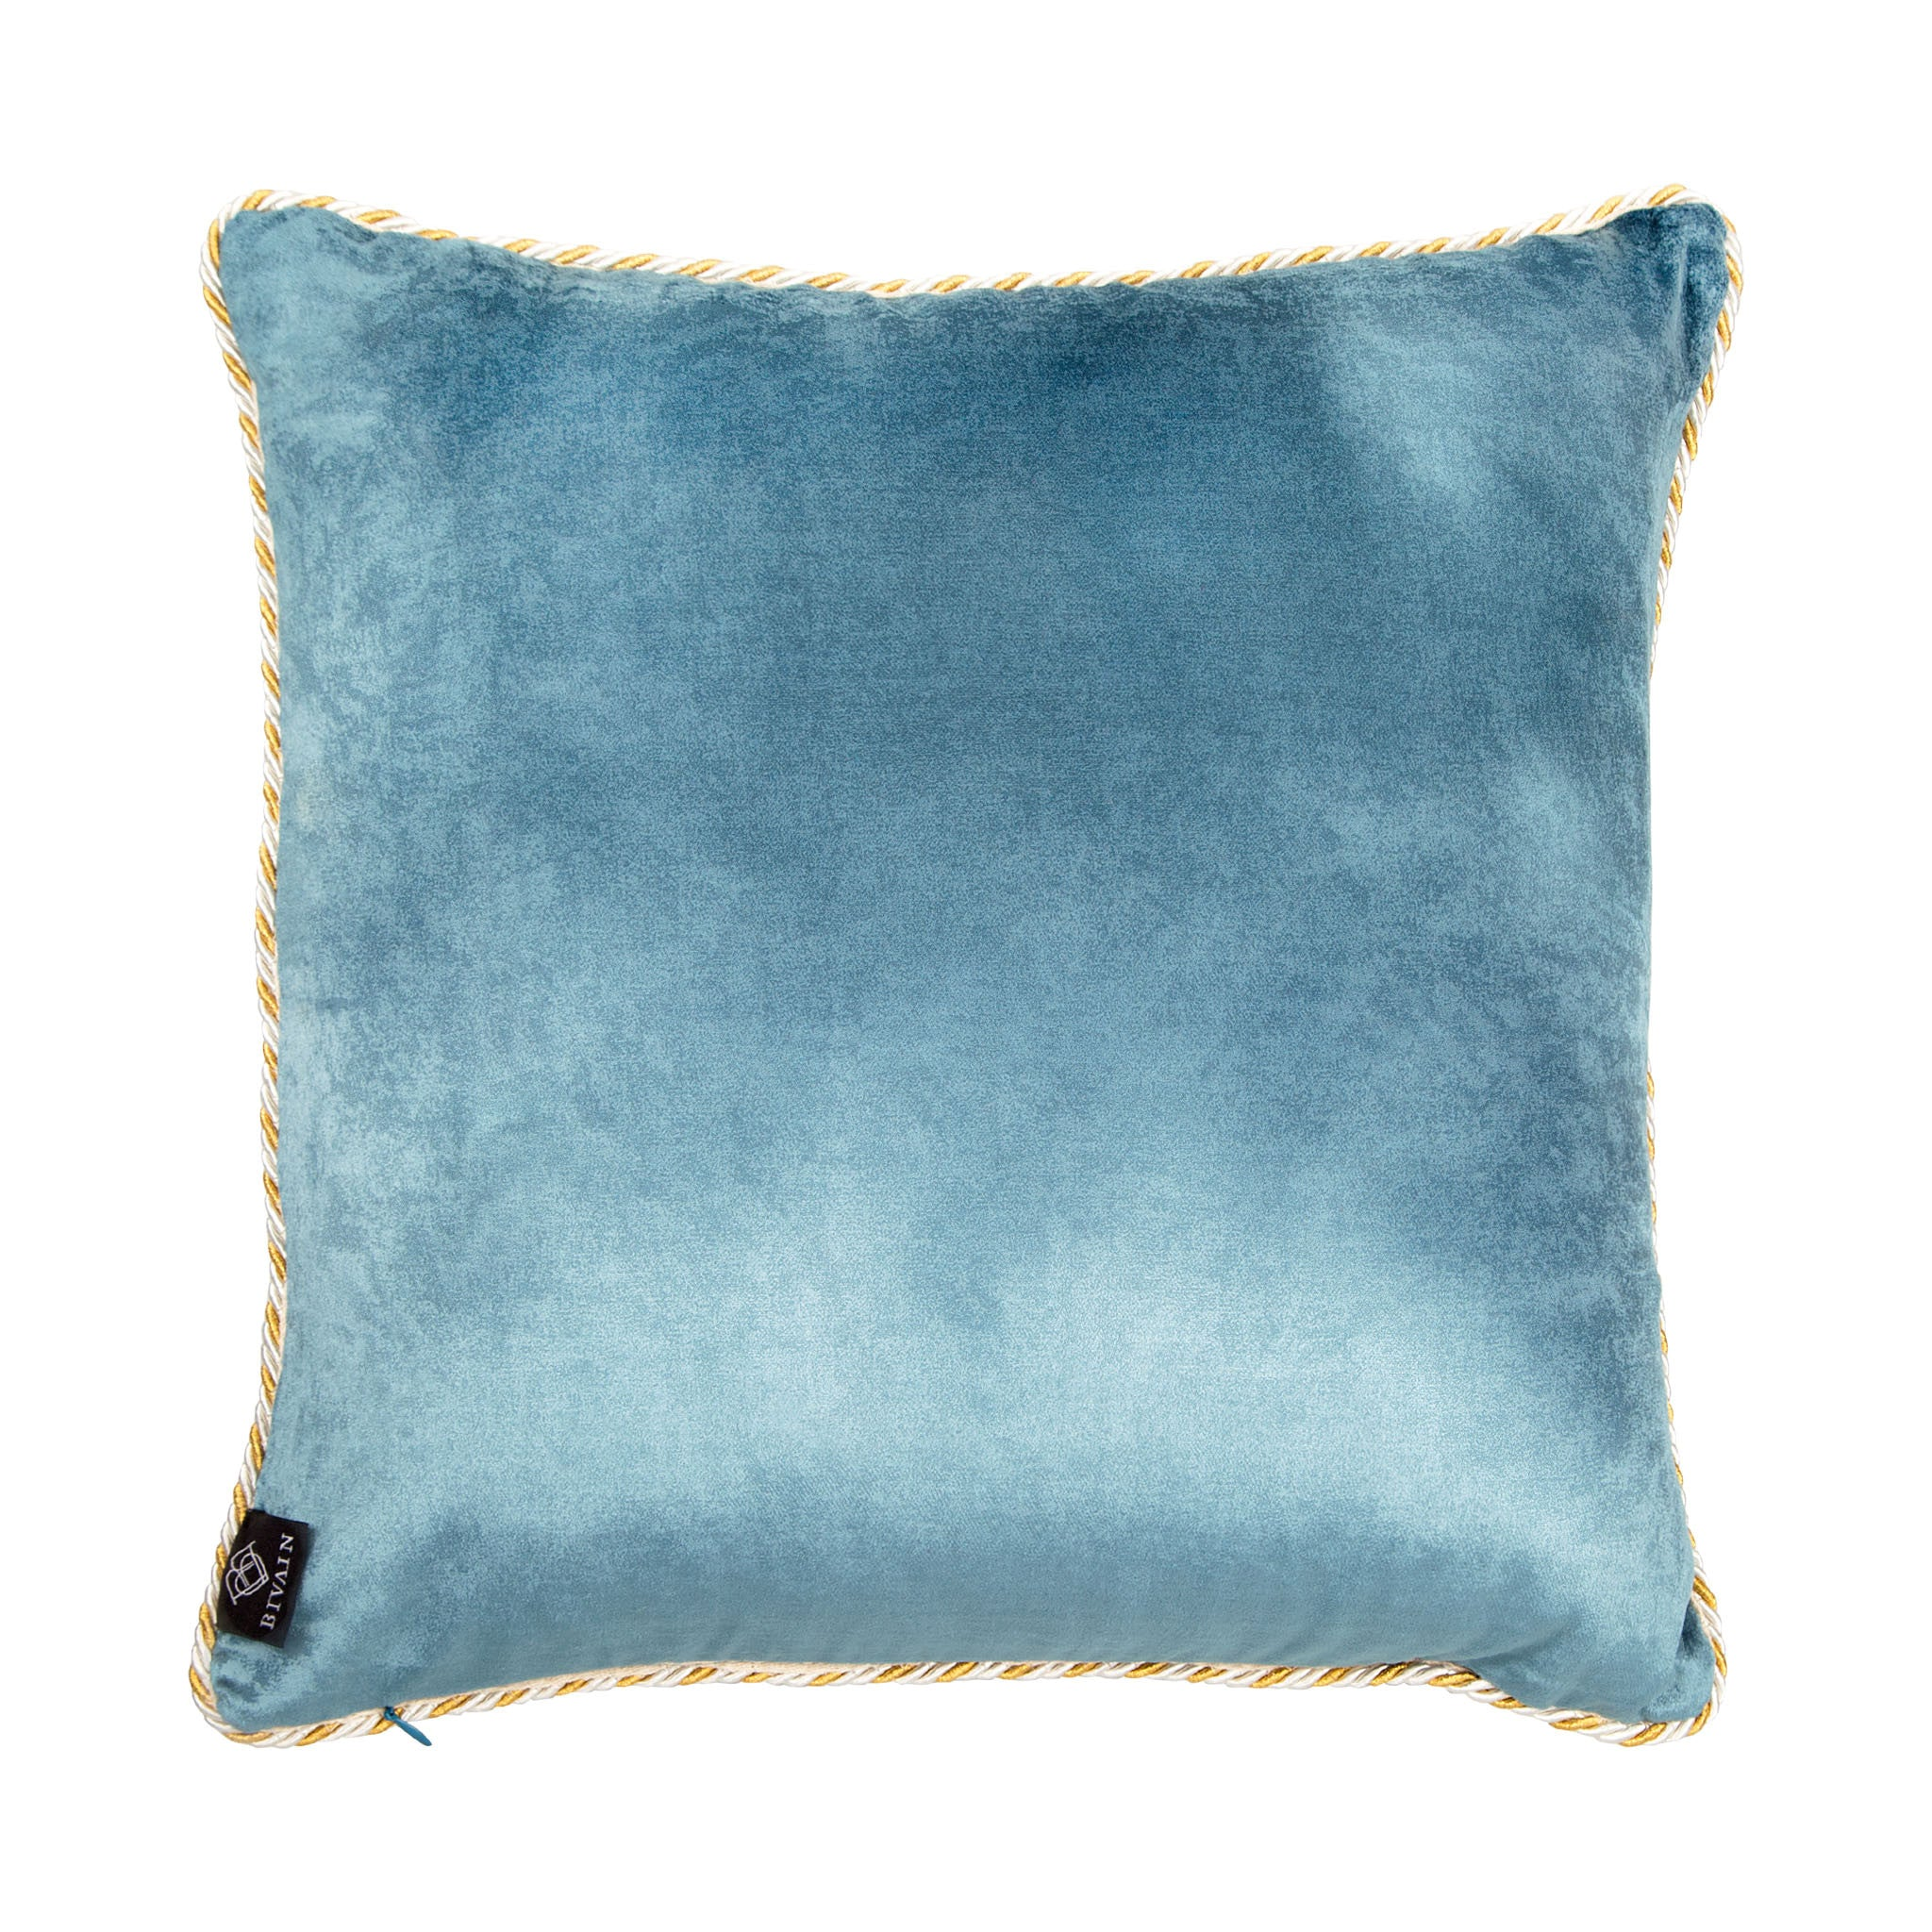 Silk twill and velvet camel print cushion - Bivain - 3